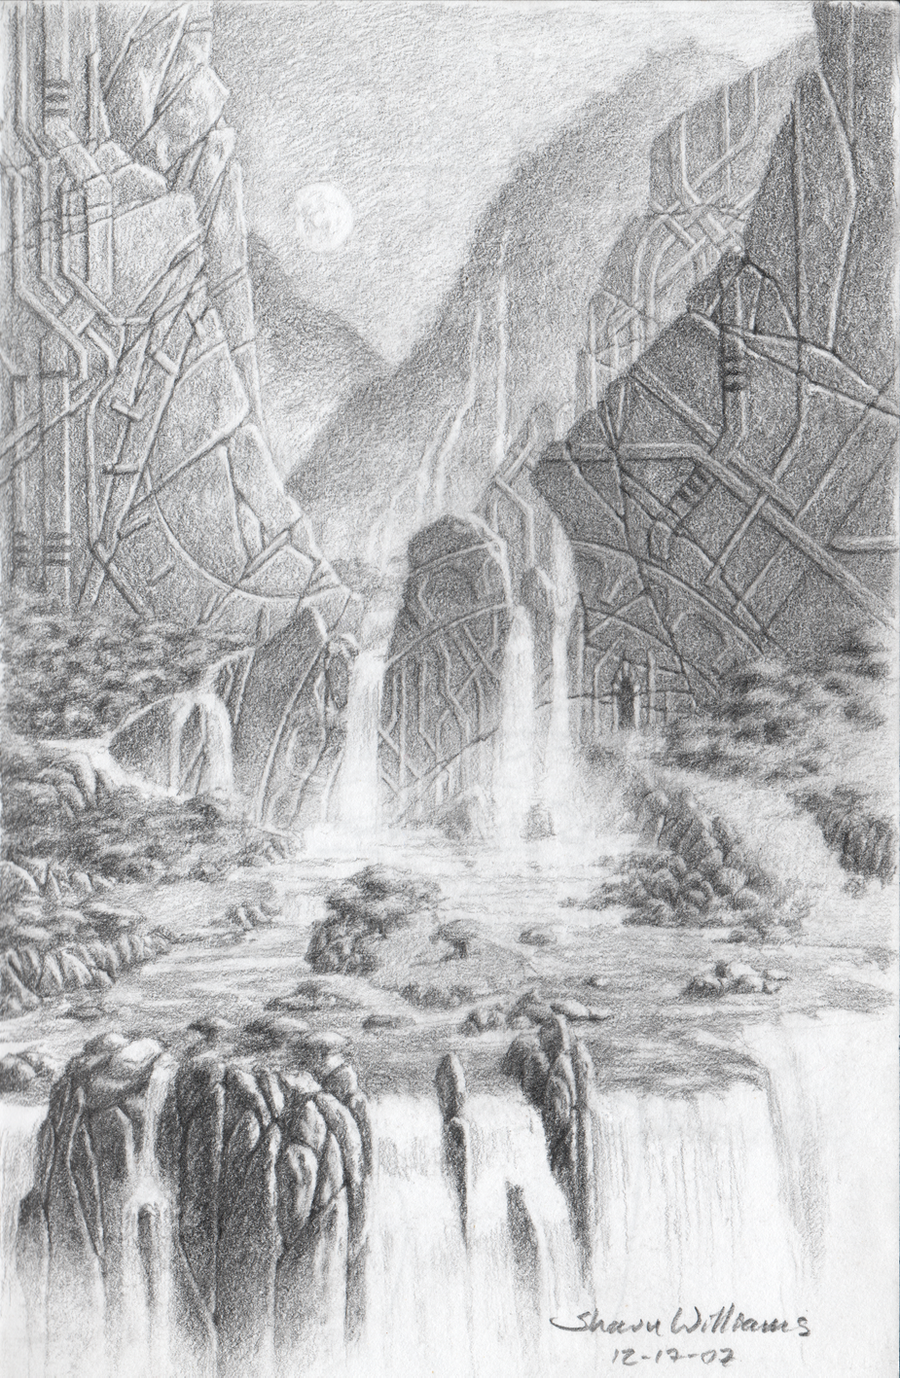 Waterfall at the ancient ruins by shauncharles on DeviantArt